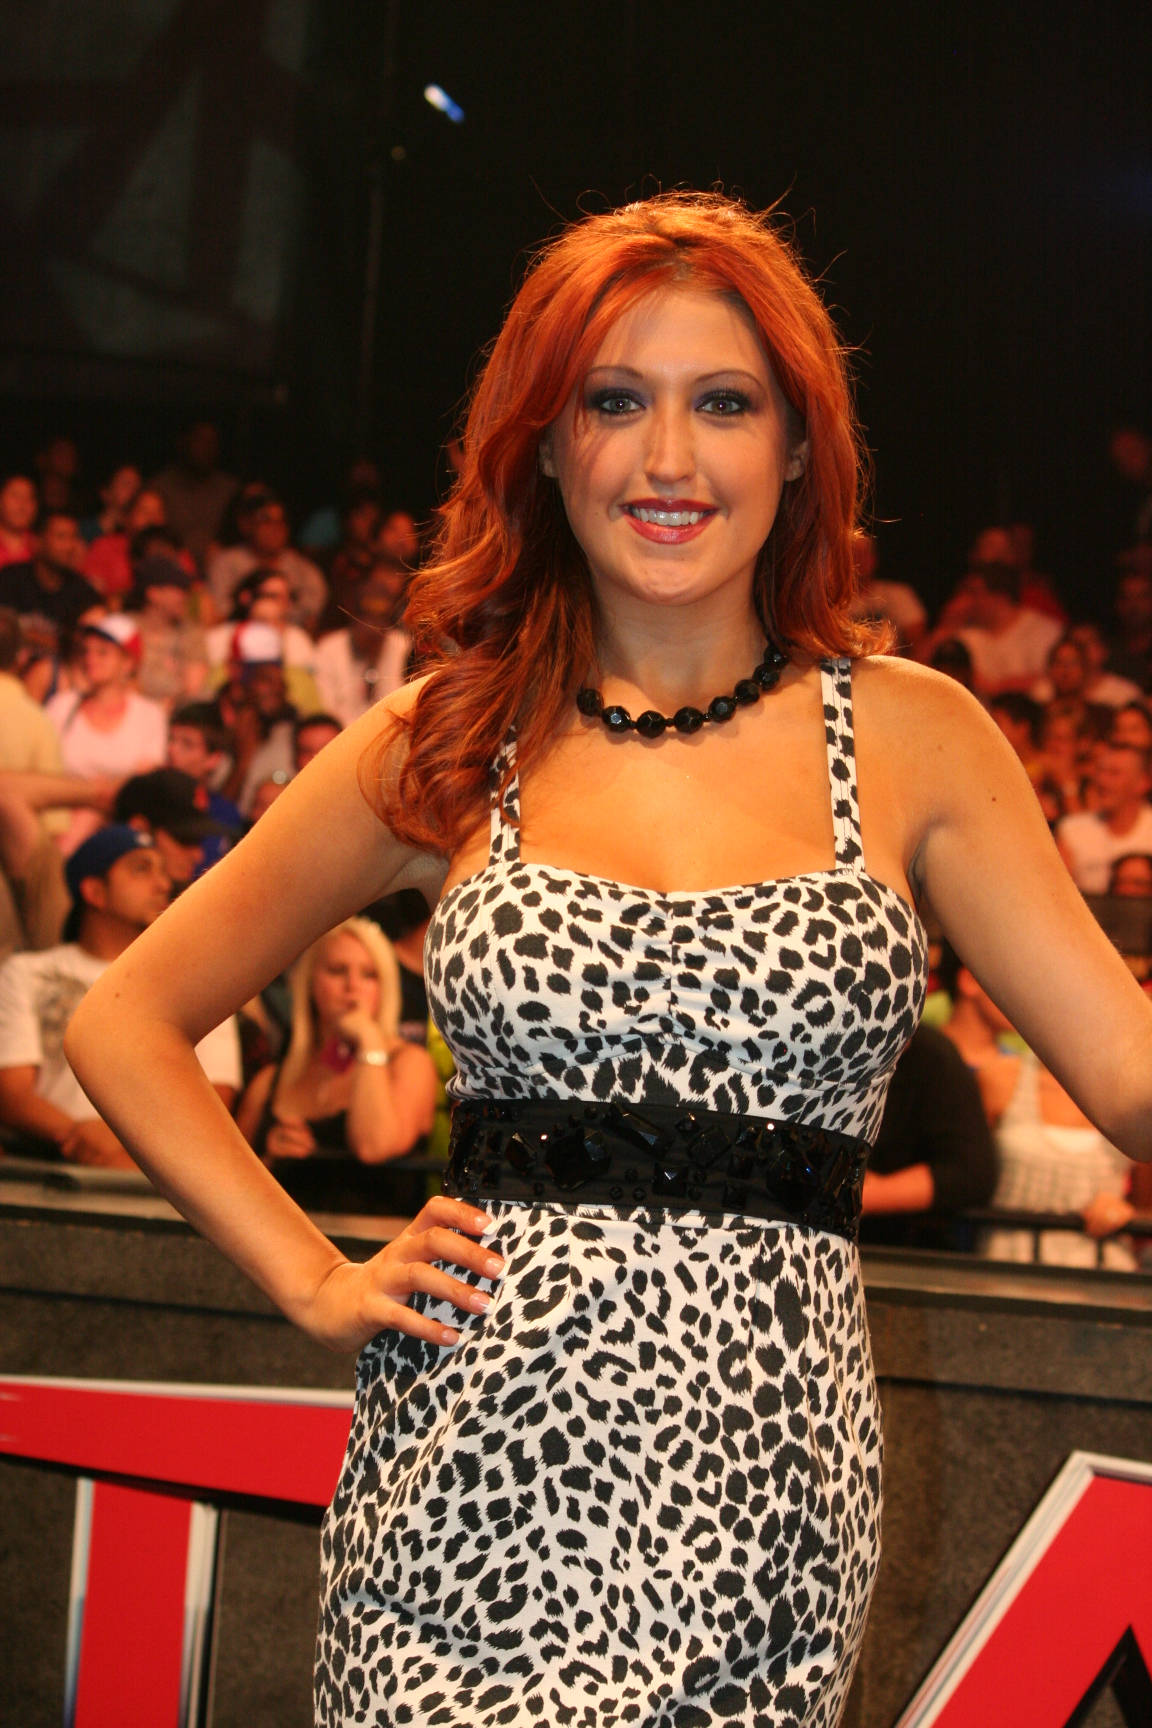 Socal Val Wikipe